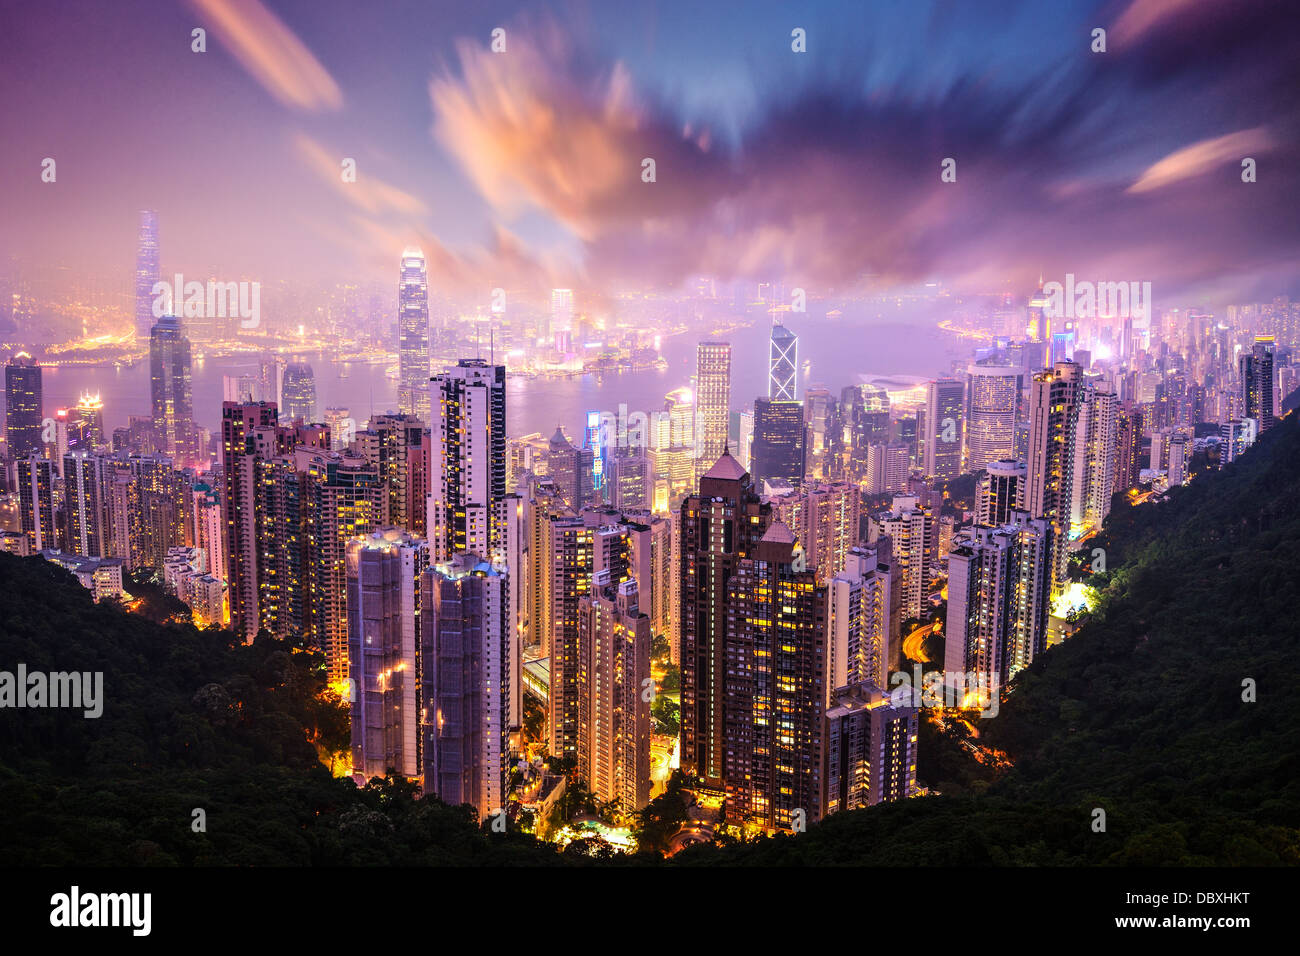 Hong Kong, China skyline from Victoria Peak. Stock Photo